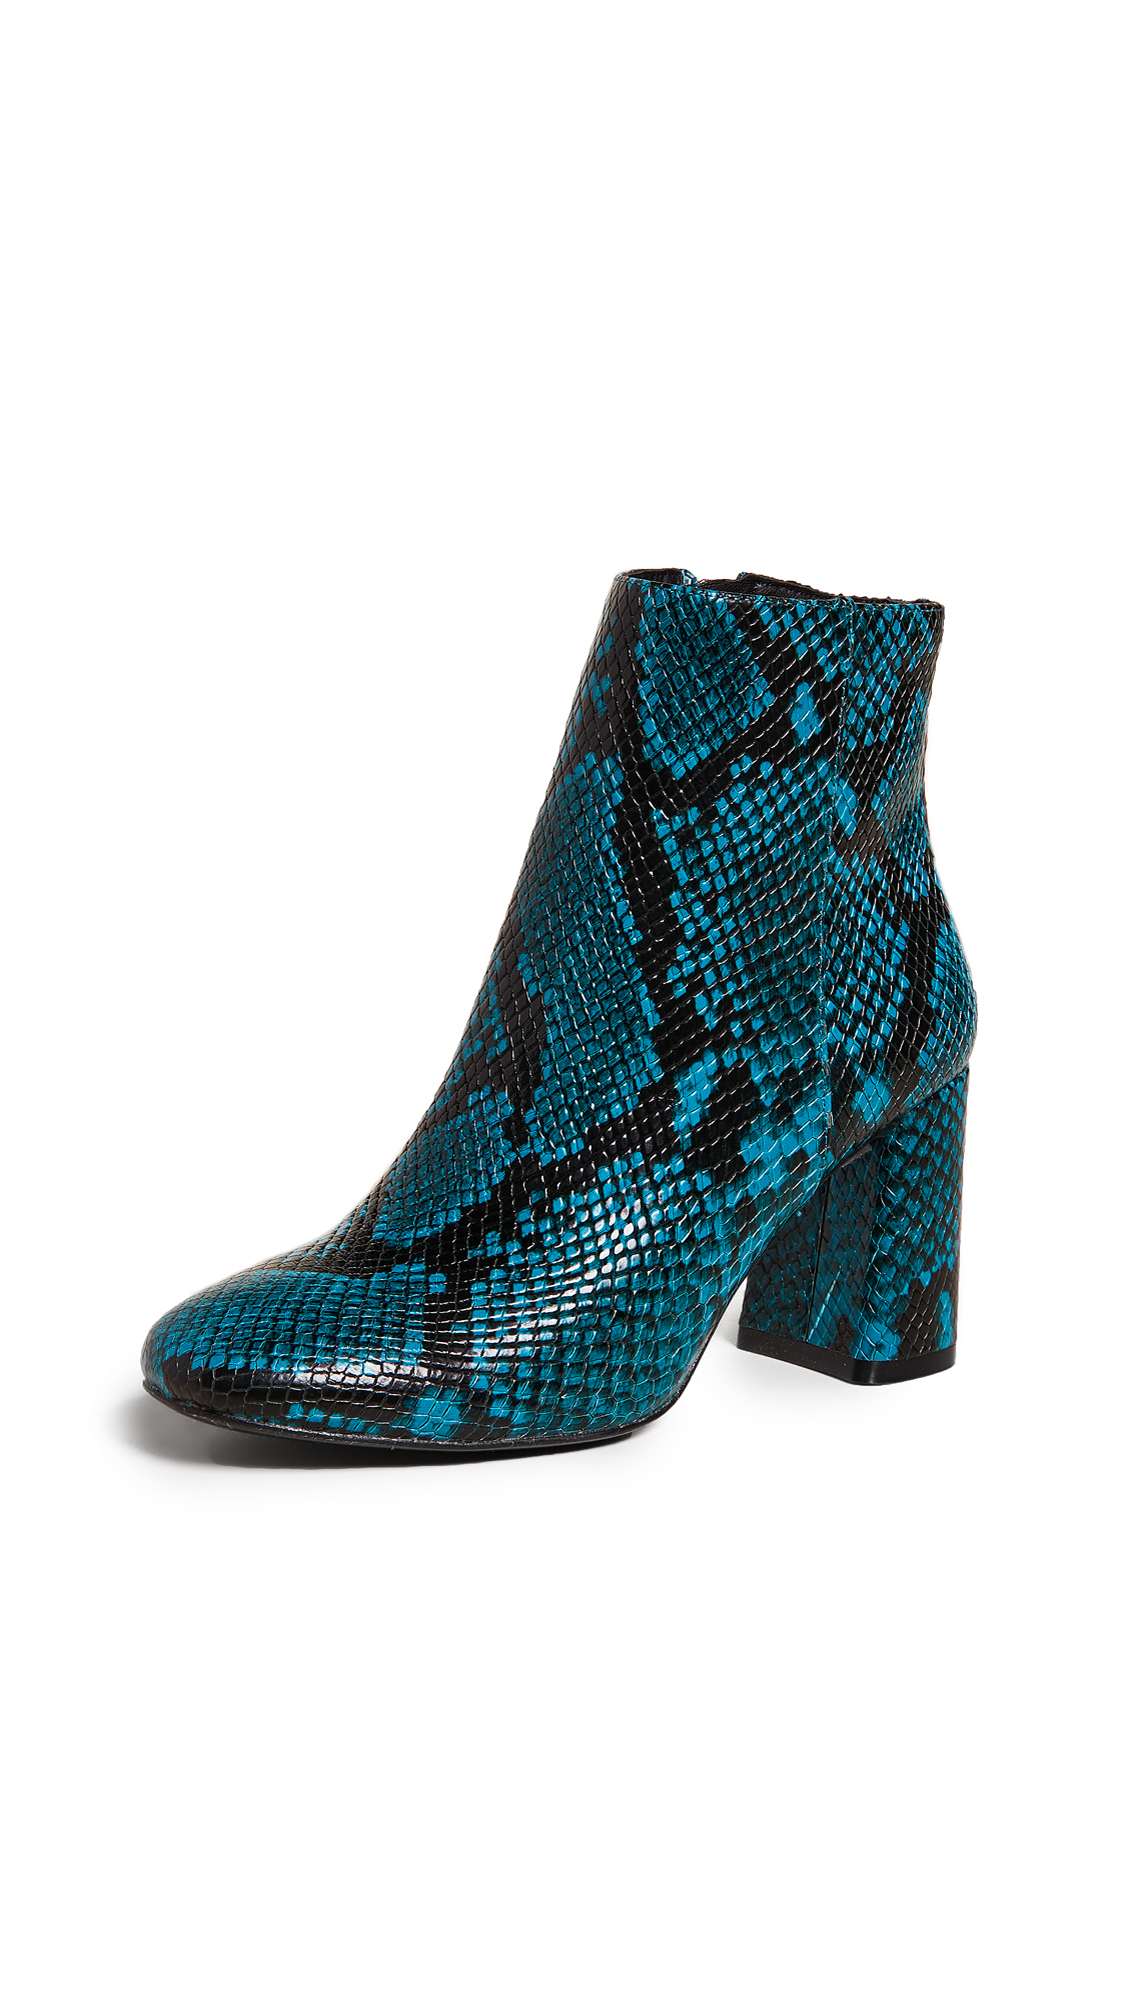 alice + olivia Dobrey Block Heel Booties - Teal